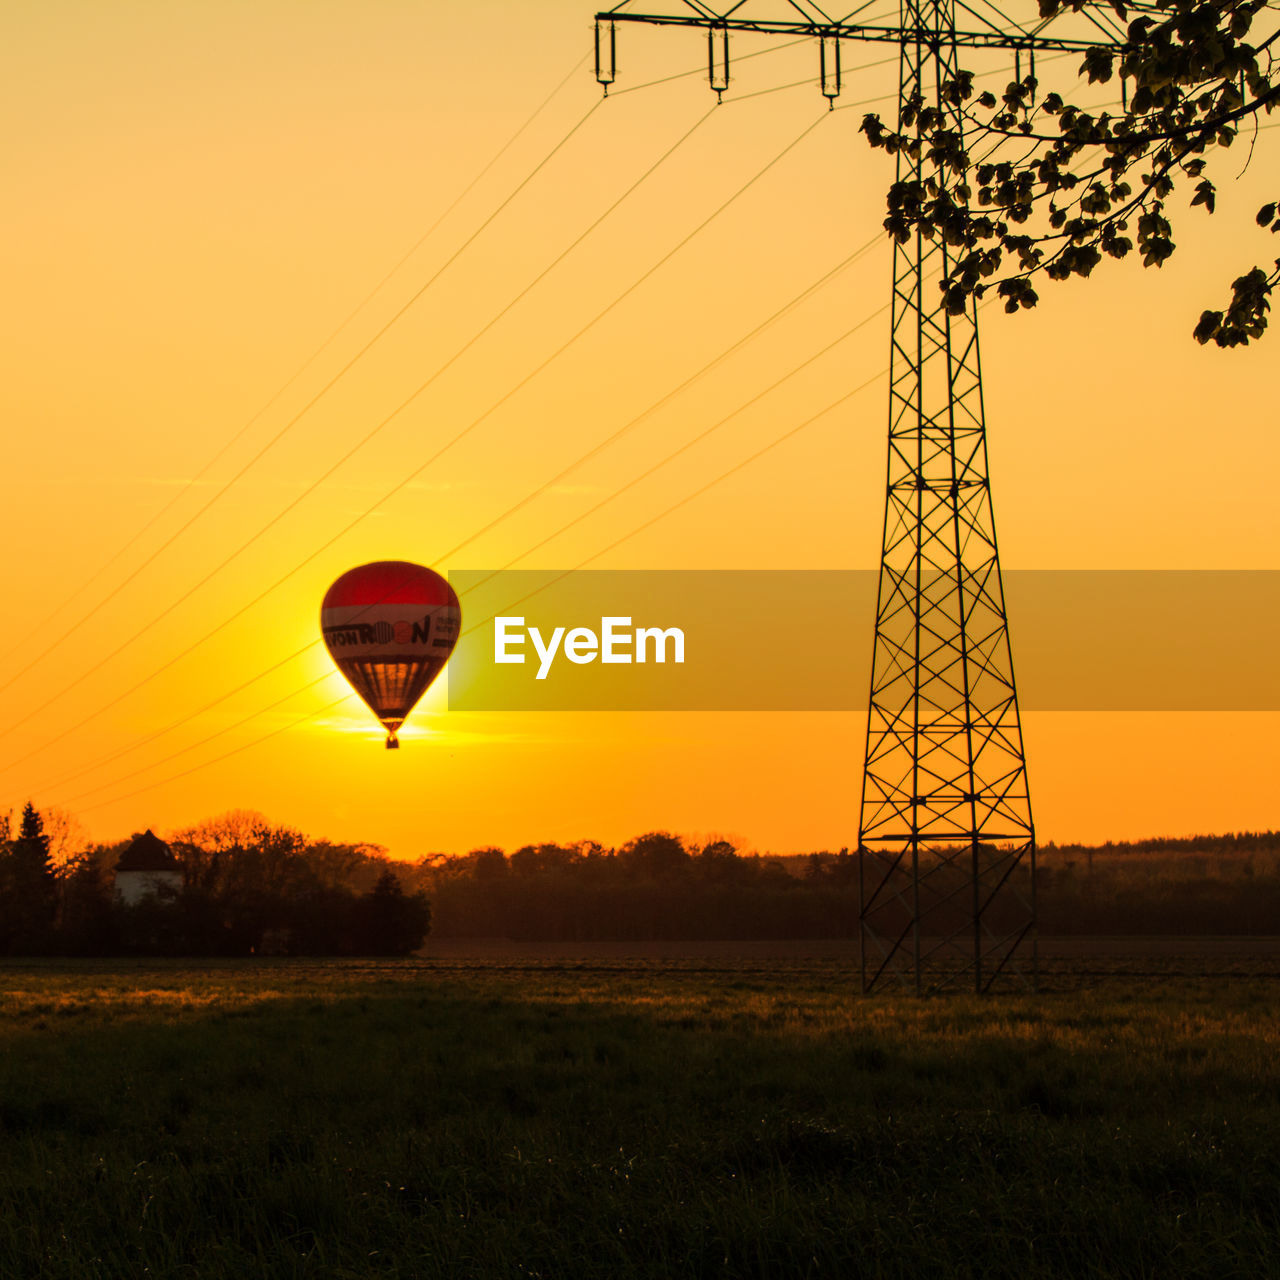 sky, sunset, hot air balloon, nature, field, land, air vehicle, environment, balloon, transportation, landscape, electricity pylon, orange color, no people, plant, technology, beauty in nature, mid-air, electricity, flying, outdoors, power supply